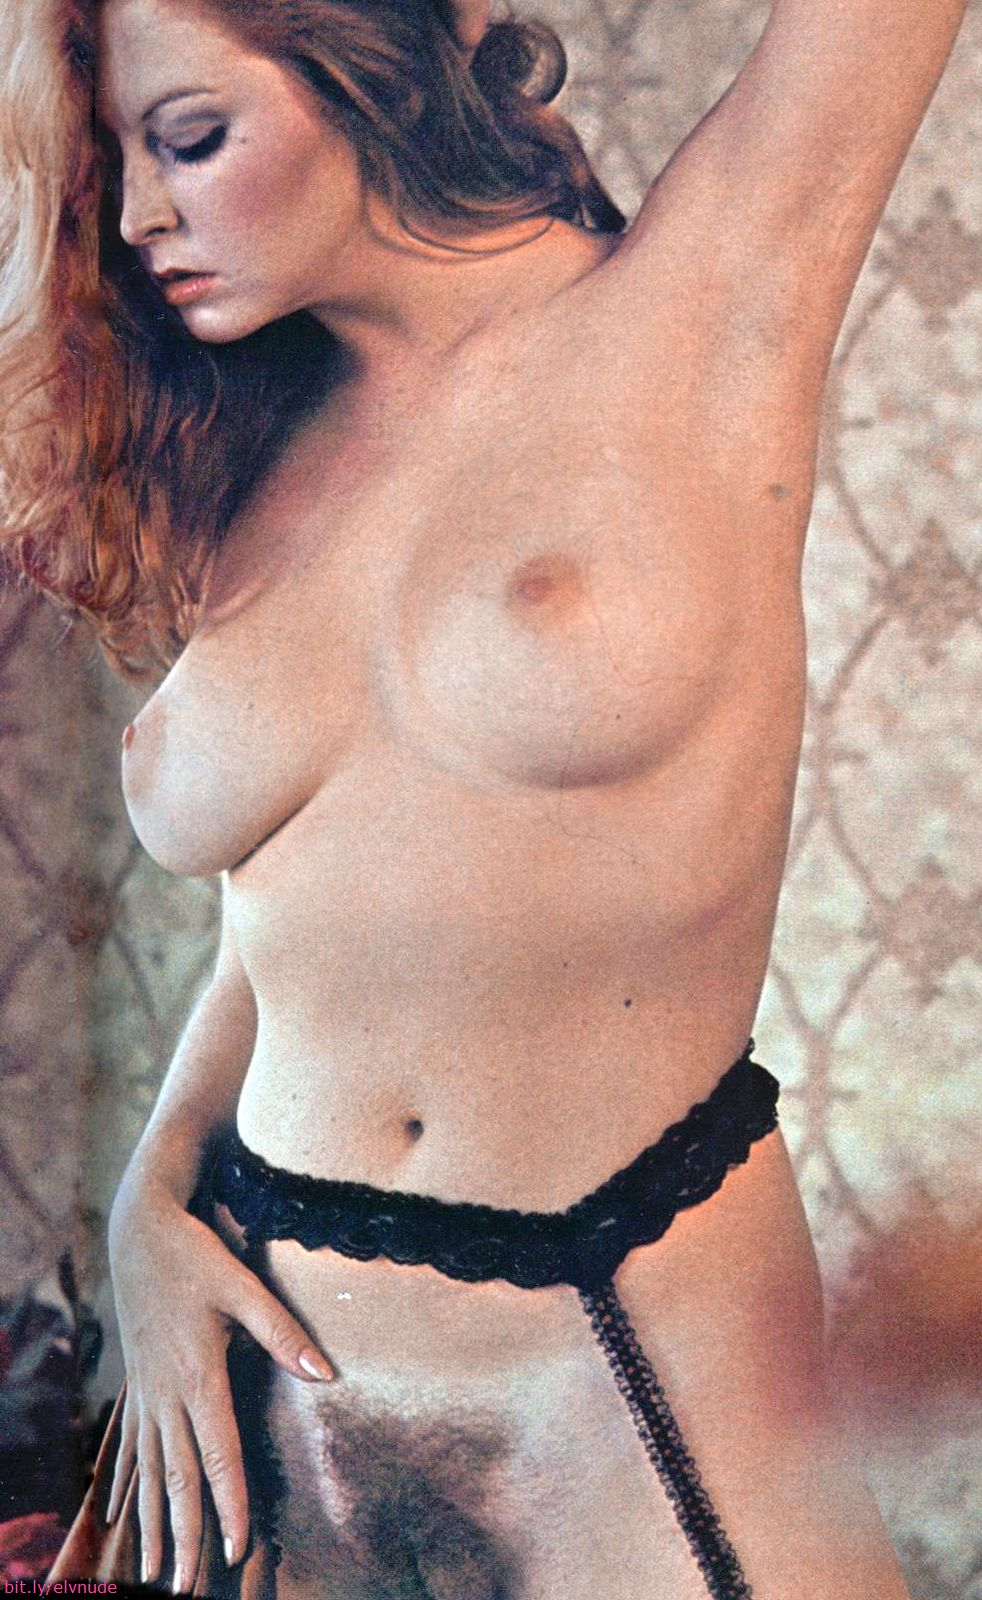 Cassandra petersons nude photos excited